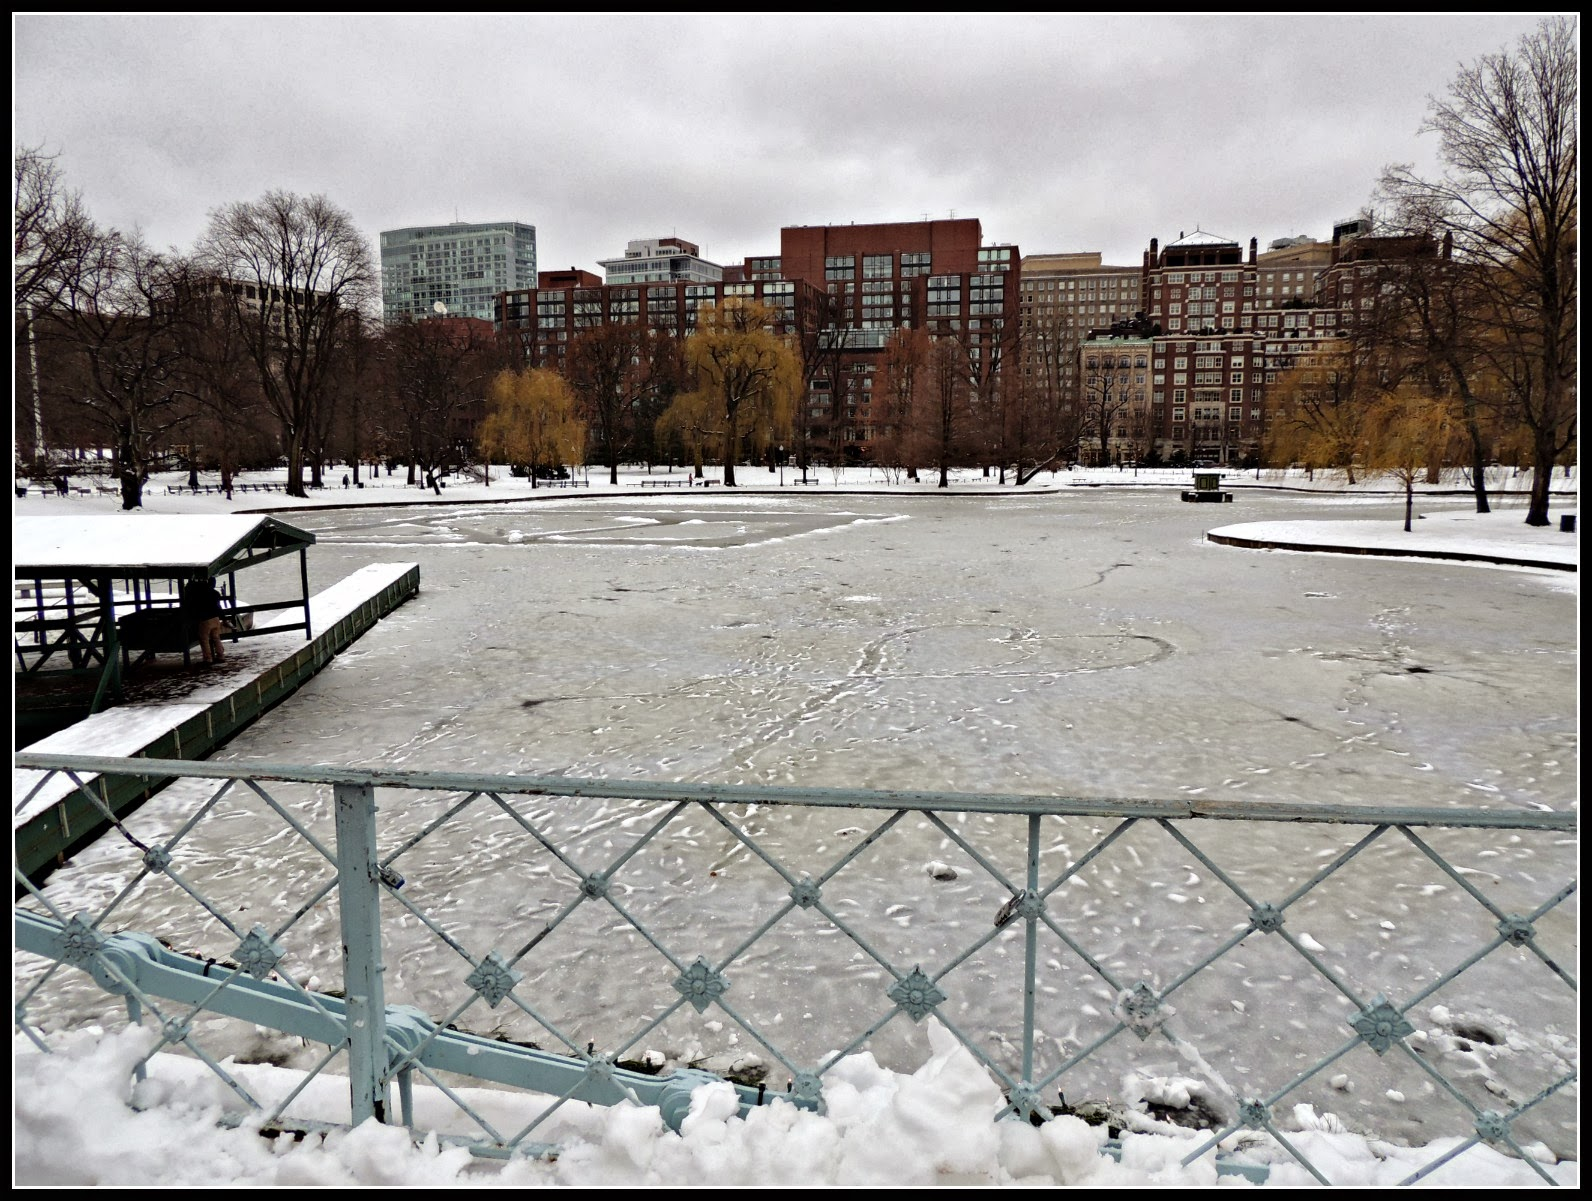 Invierno 2013-2014 Boston Garden